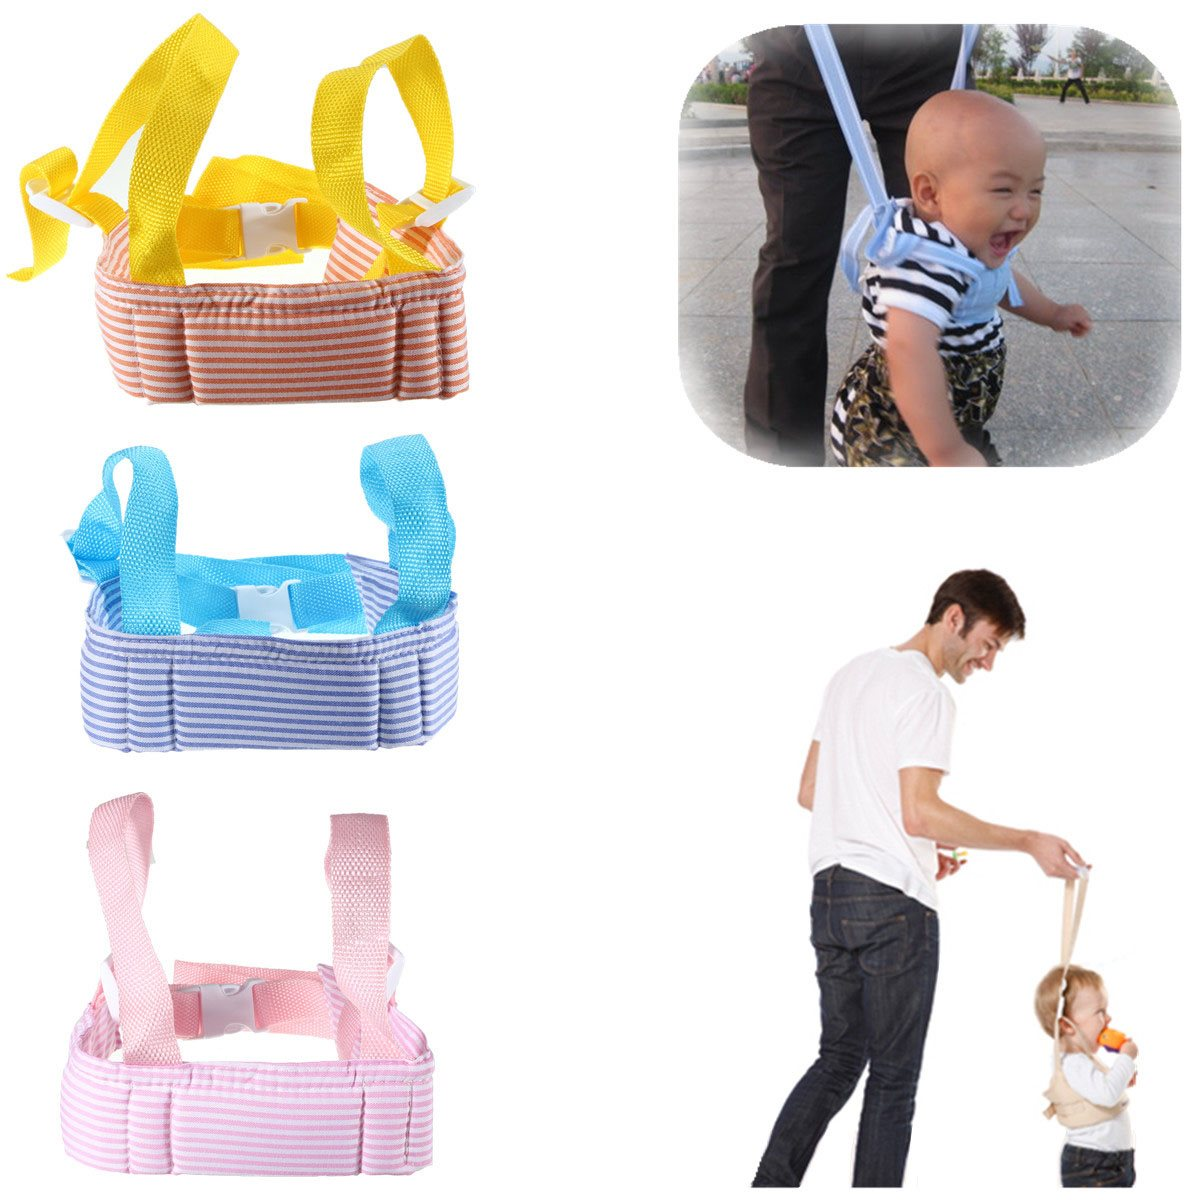 Portable Baby Toddler Walking Assistant Learning Walk Safety Reins Walker Wings Baby Kids Keeper Toddler Walking Safety Harness(China (Mainland))